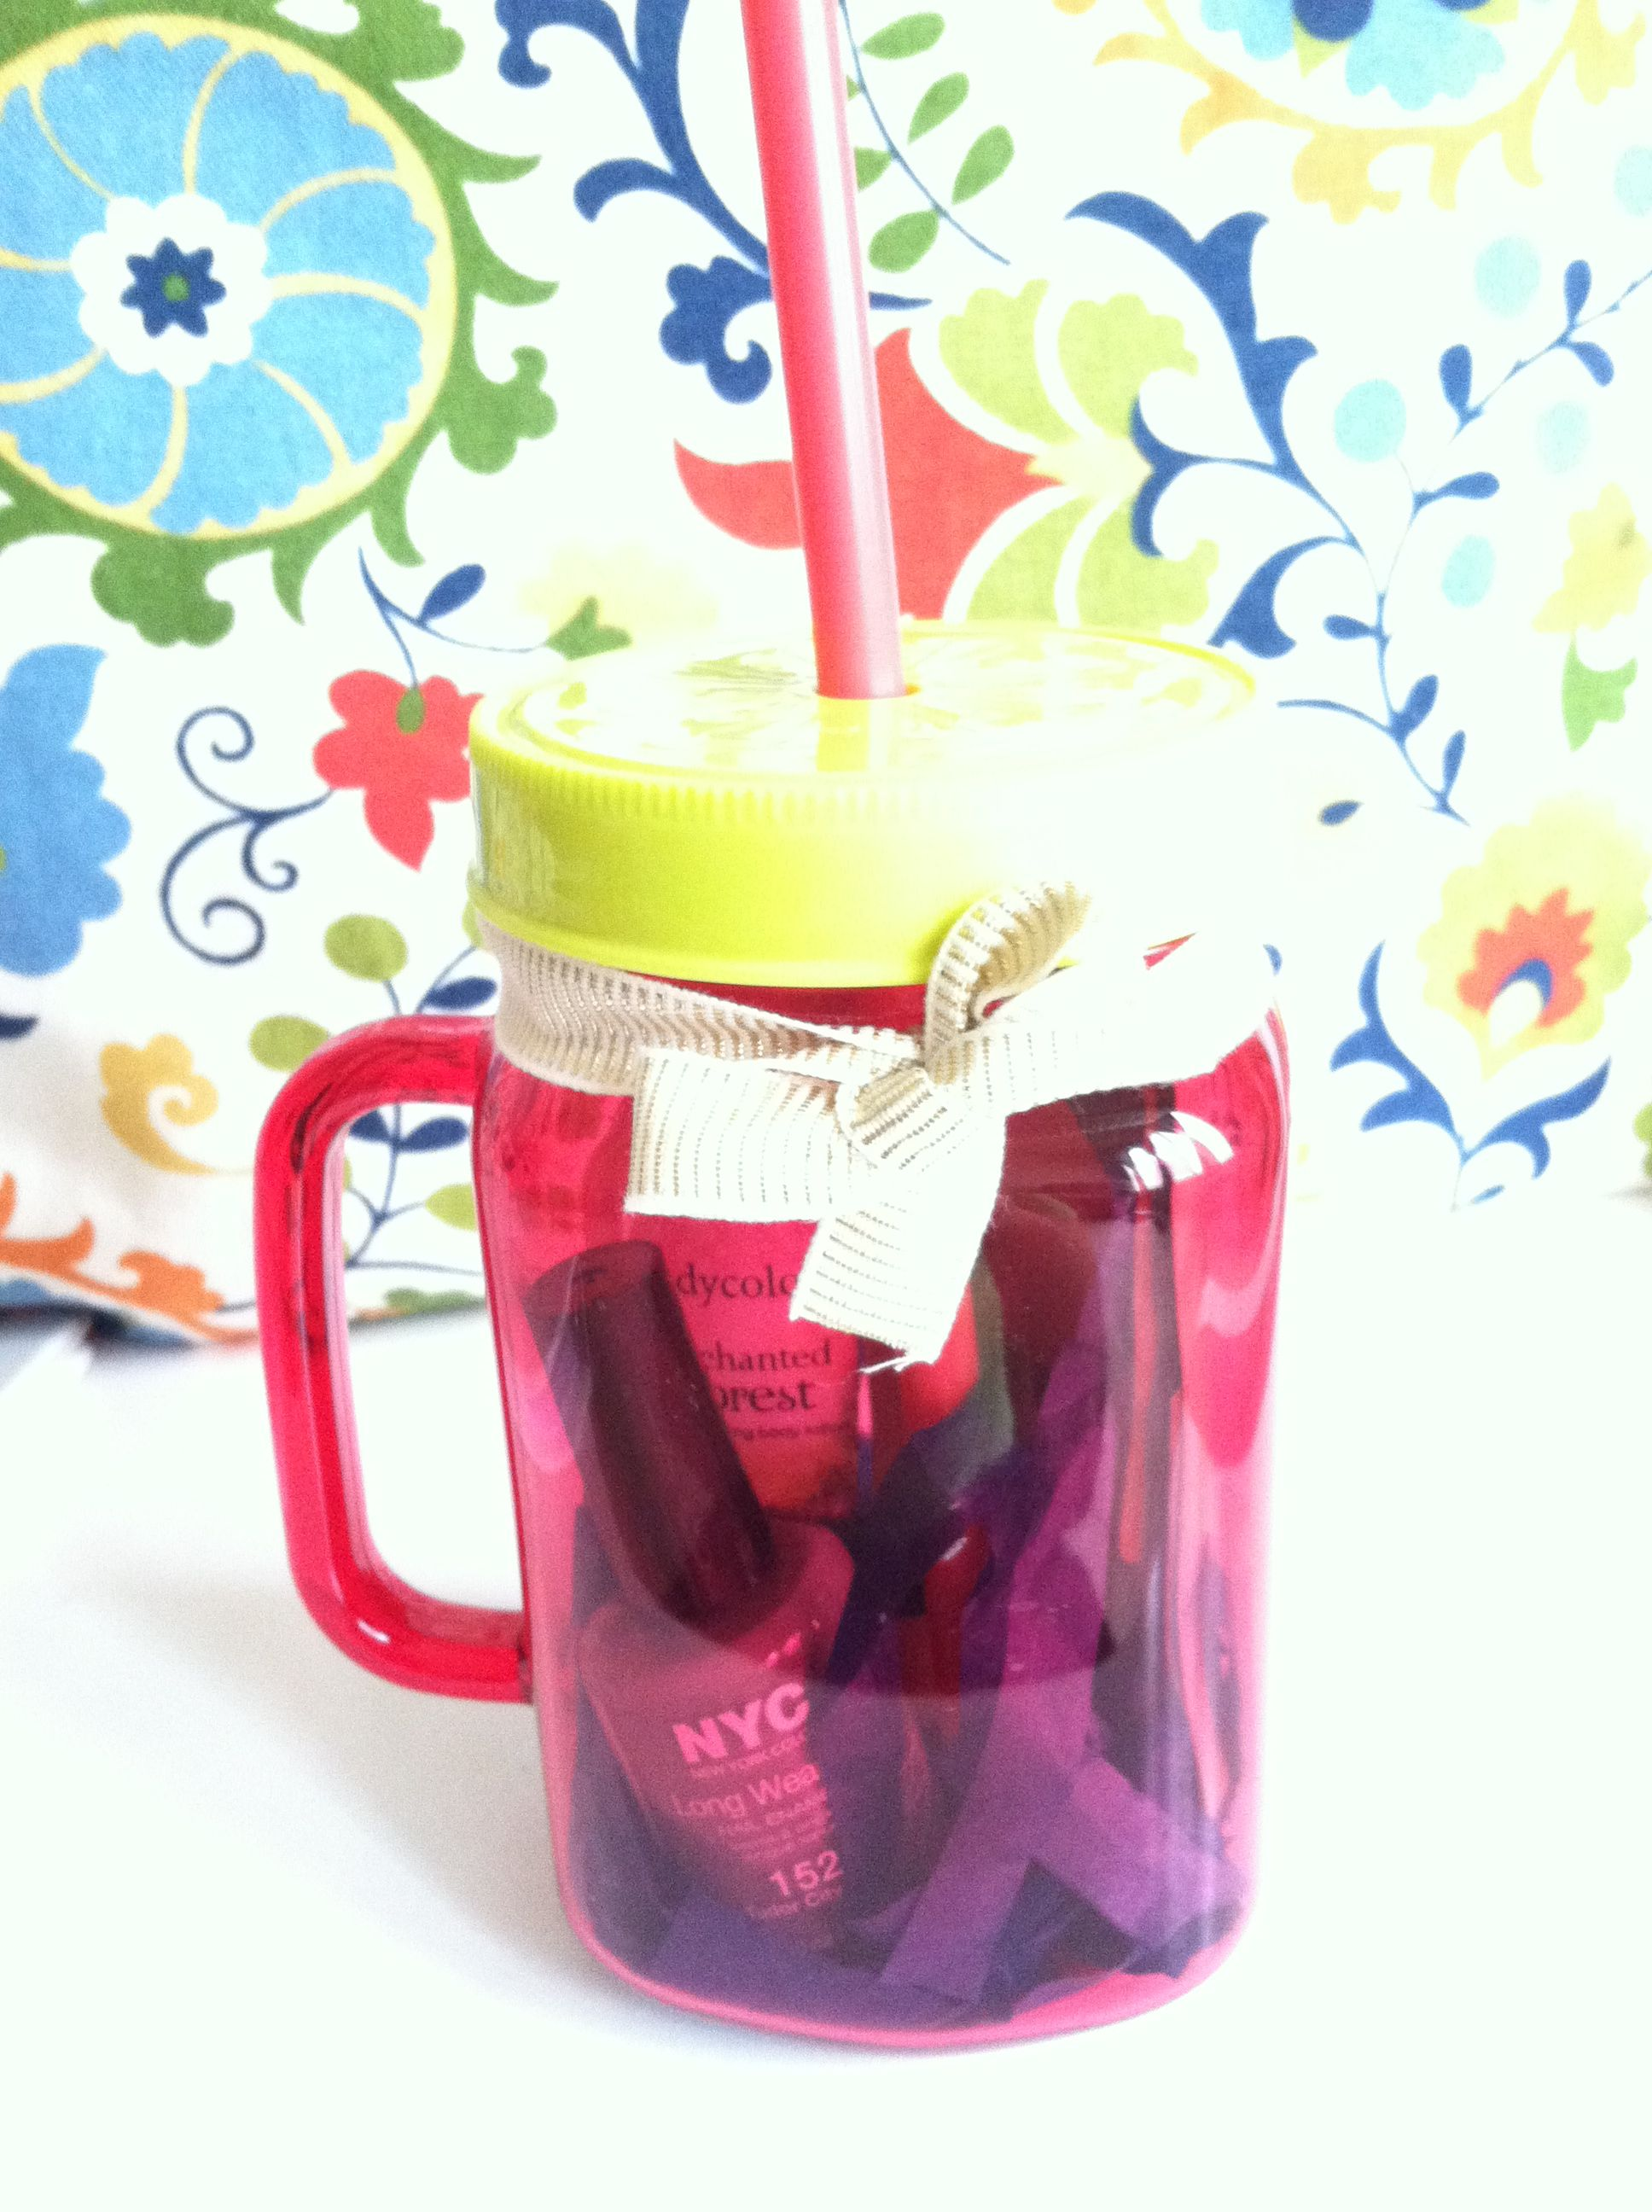 Easy birthday gift cup from target nail polish lotion